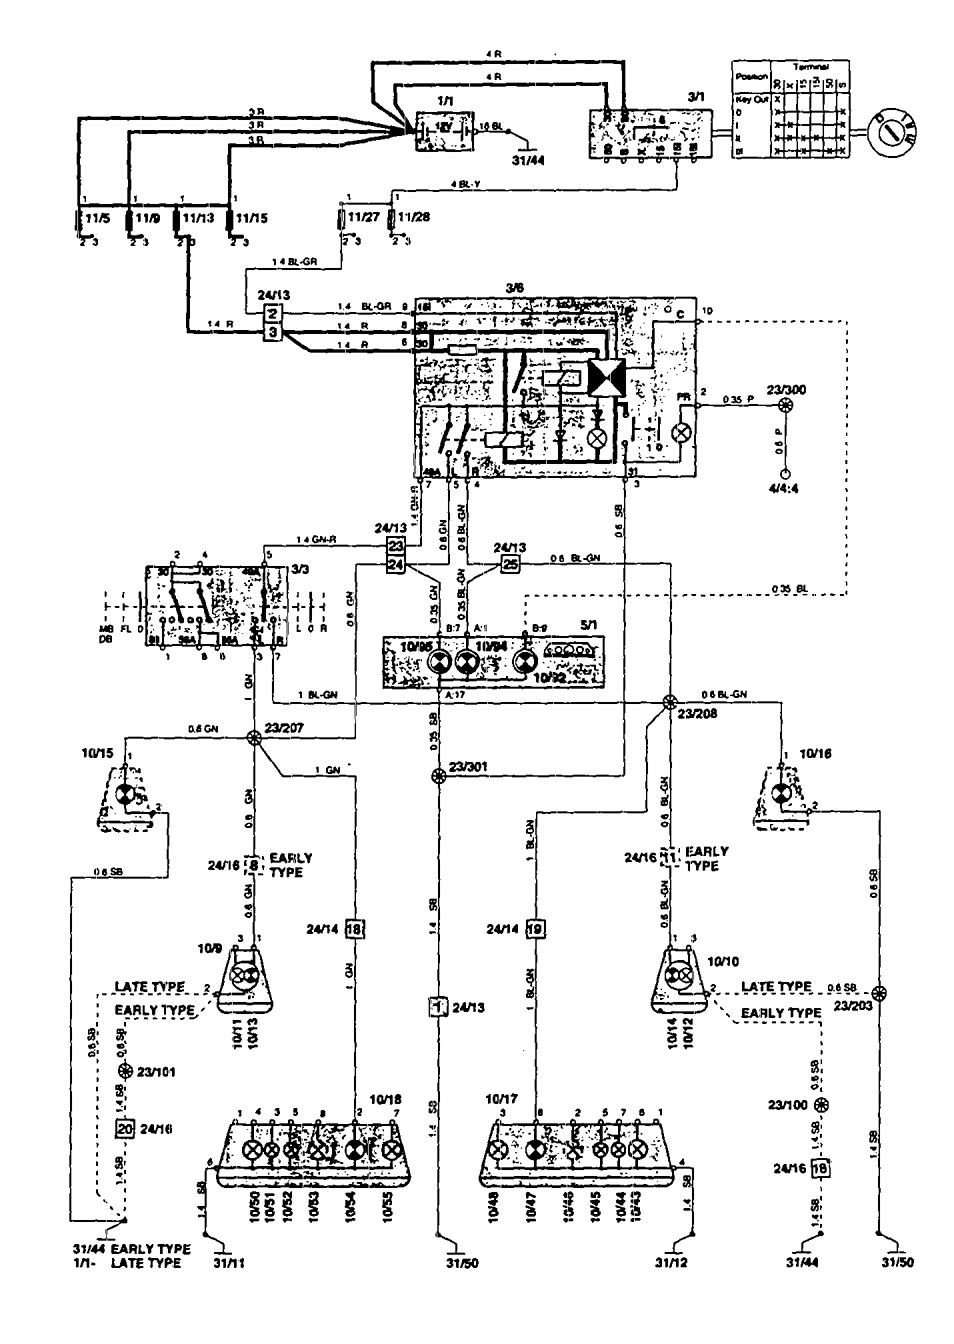 Volvo 850 (1995) - wiring diagrams - turn signal lamp - Carknowledge.infoCarknowledge.info